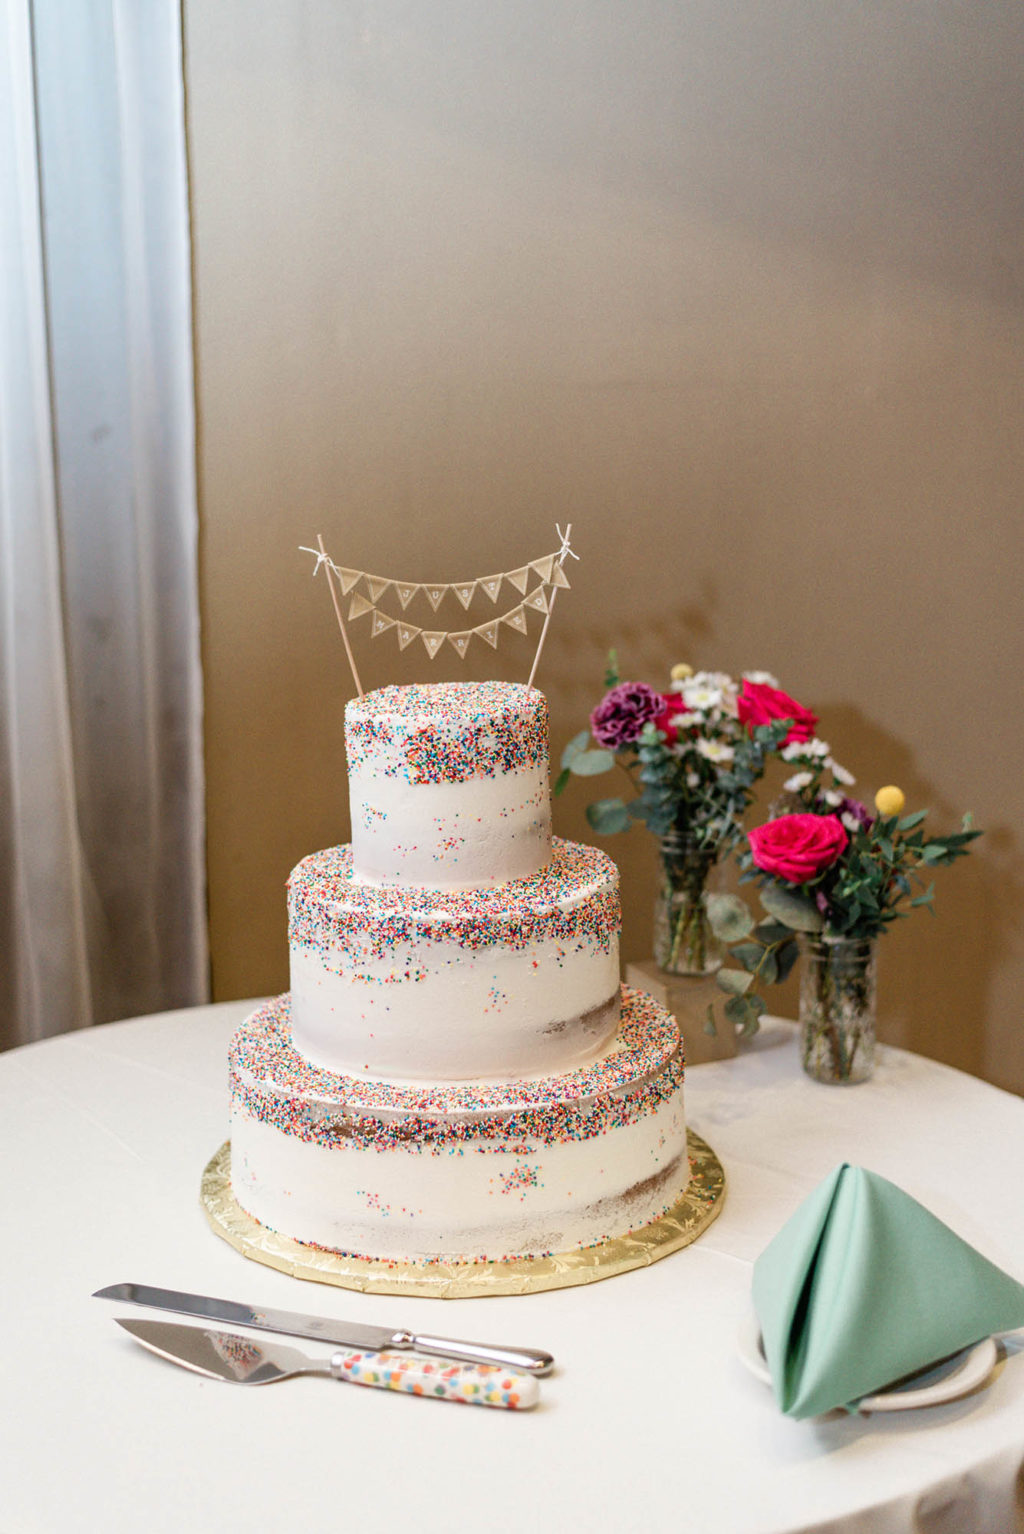 Wedding cake with rainbow sprinkles